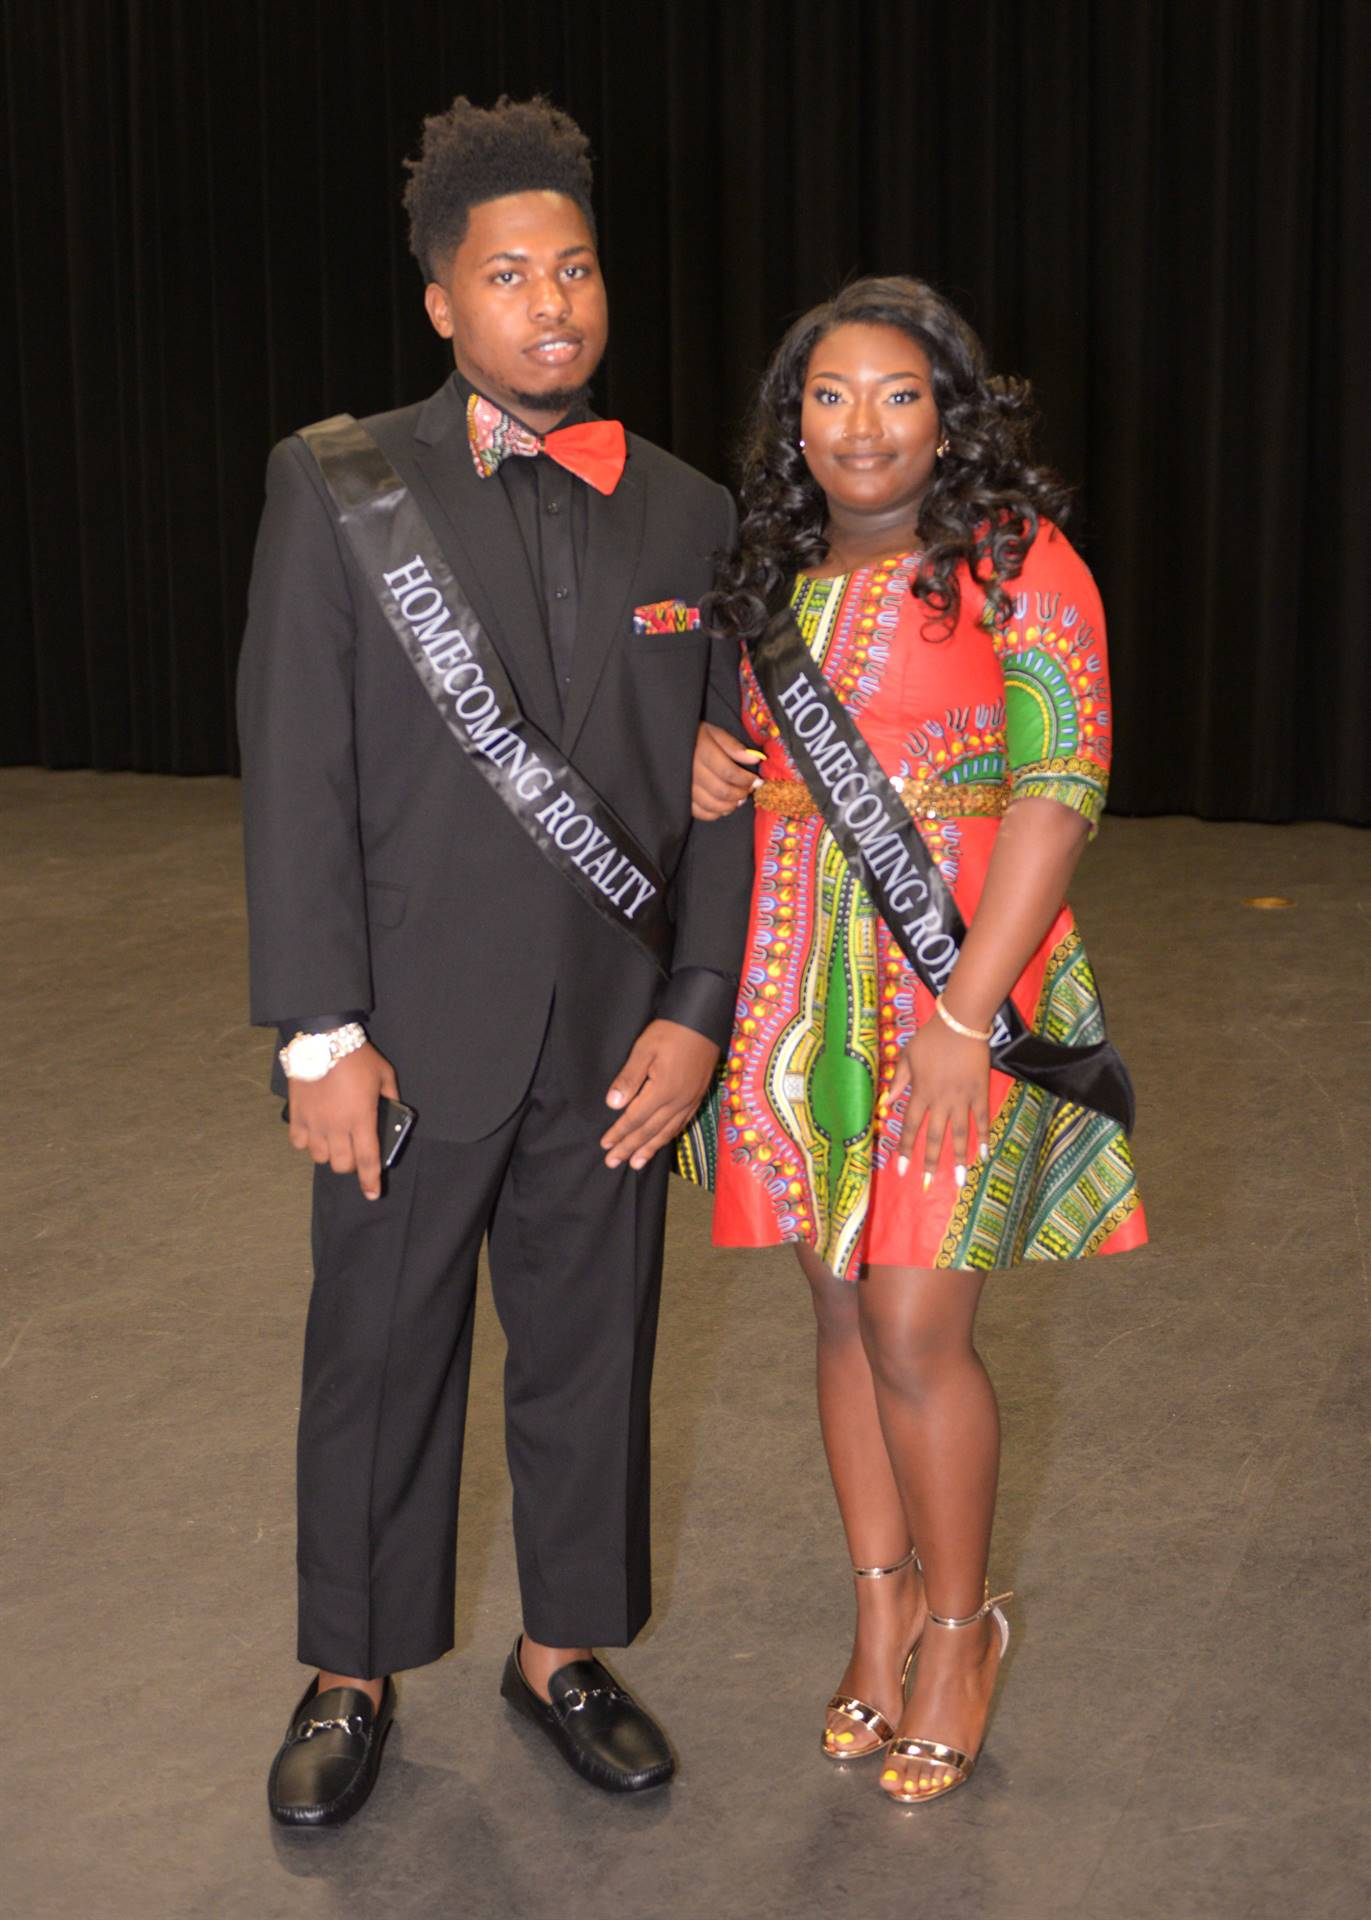 Homecoming Caniyah and Jumar backstage